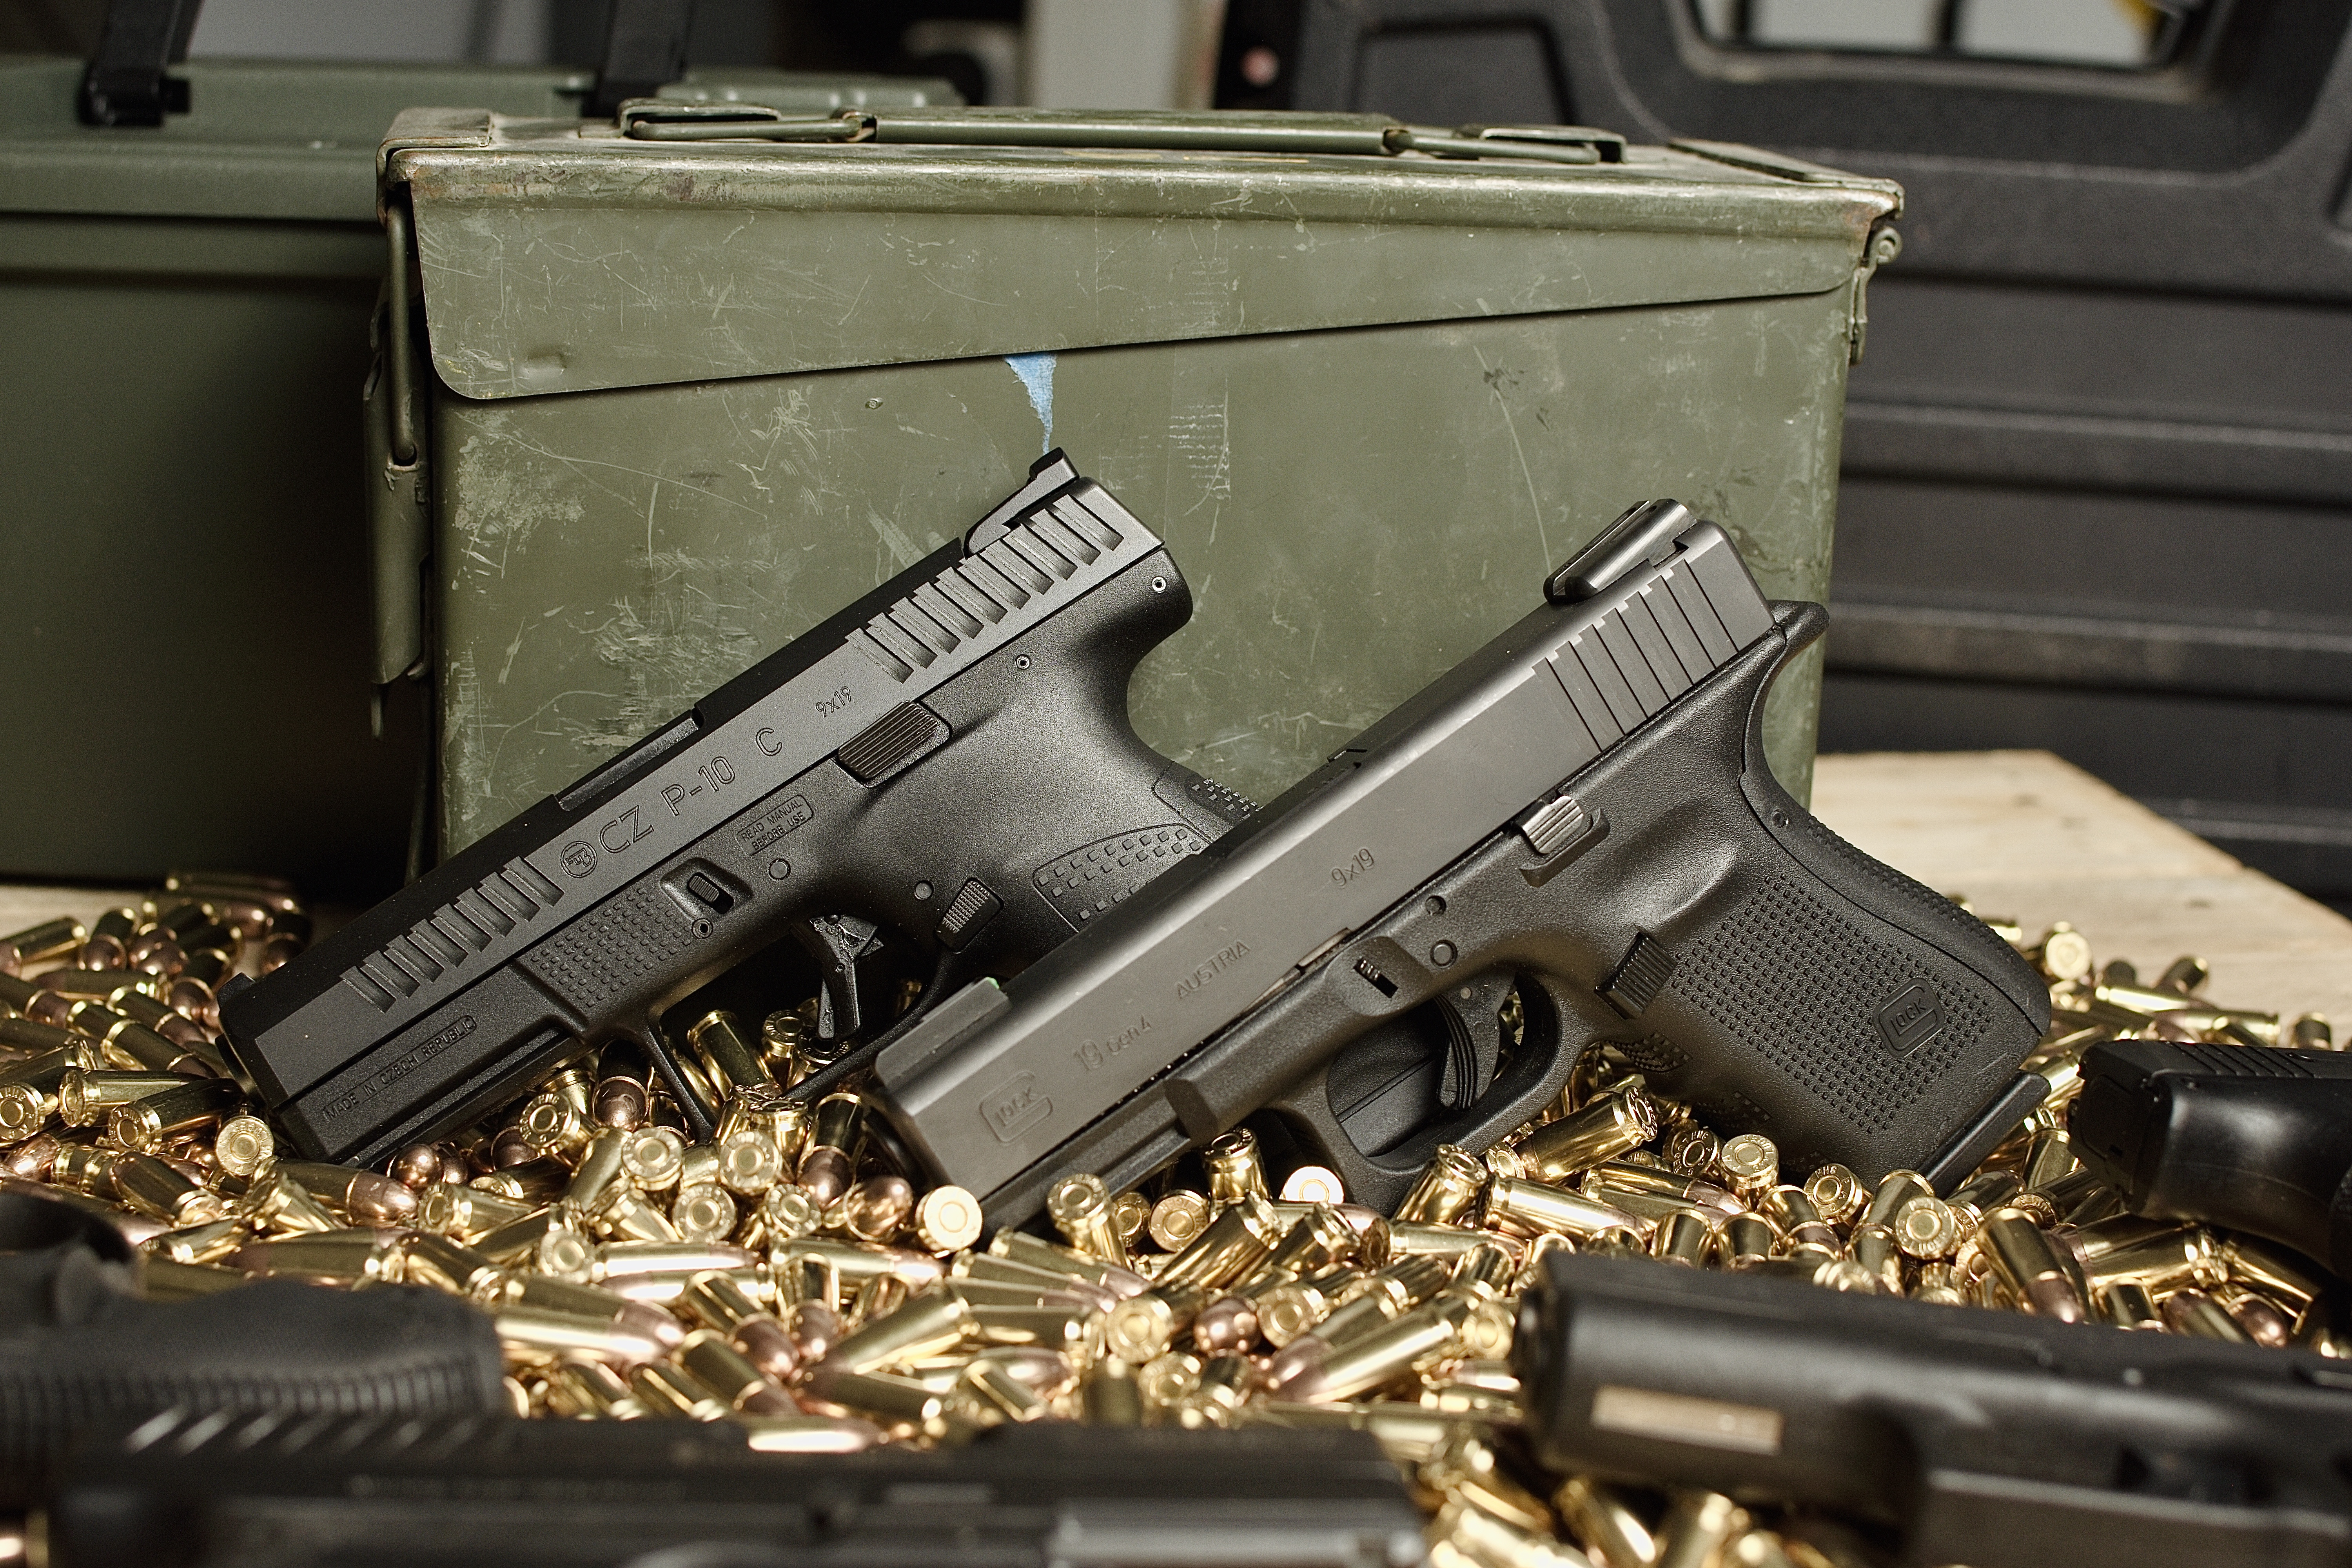 compact pistols, Glock, Glock 19, G19, CZ, CZ P10, CZ P10C, P10, P10C, hybrid holster, holsters, compact, concealed carry, Glock G19, concealed, best holster, IWB, OWB, pistols, carry pistol, best pistol, gun review, CrossBreed Holsters, holsters for concealed carry, holsters for, best holster